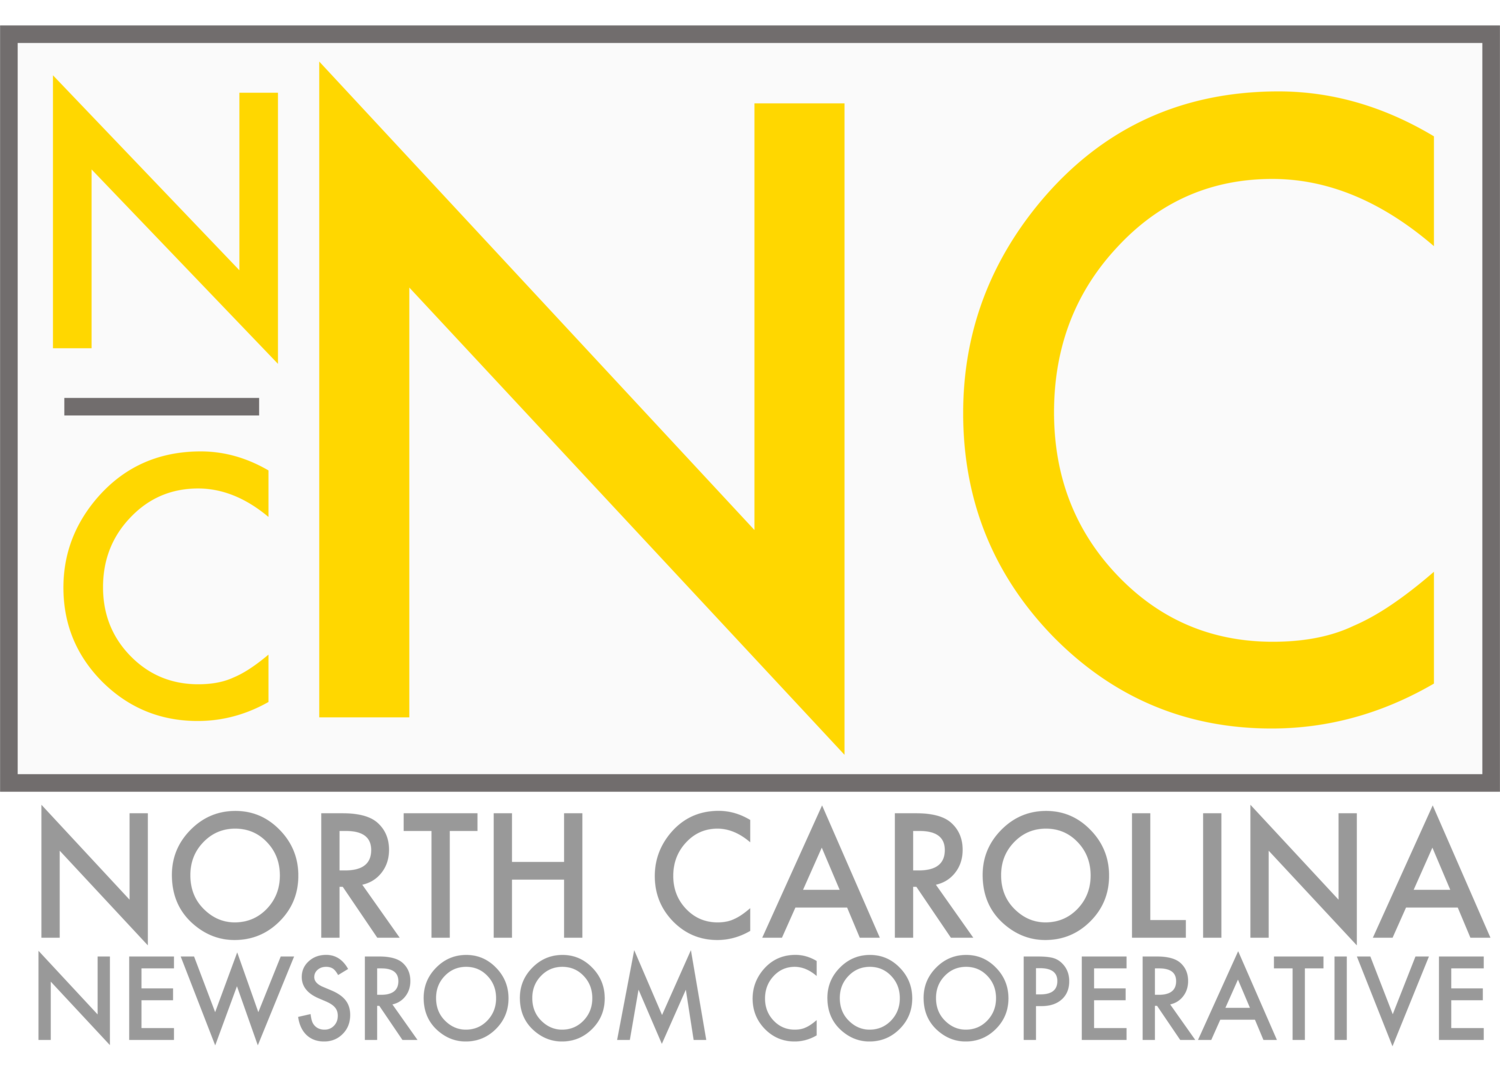 North Carolina Newsroom Cooperative